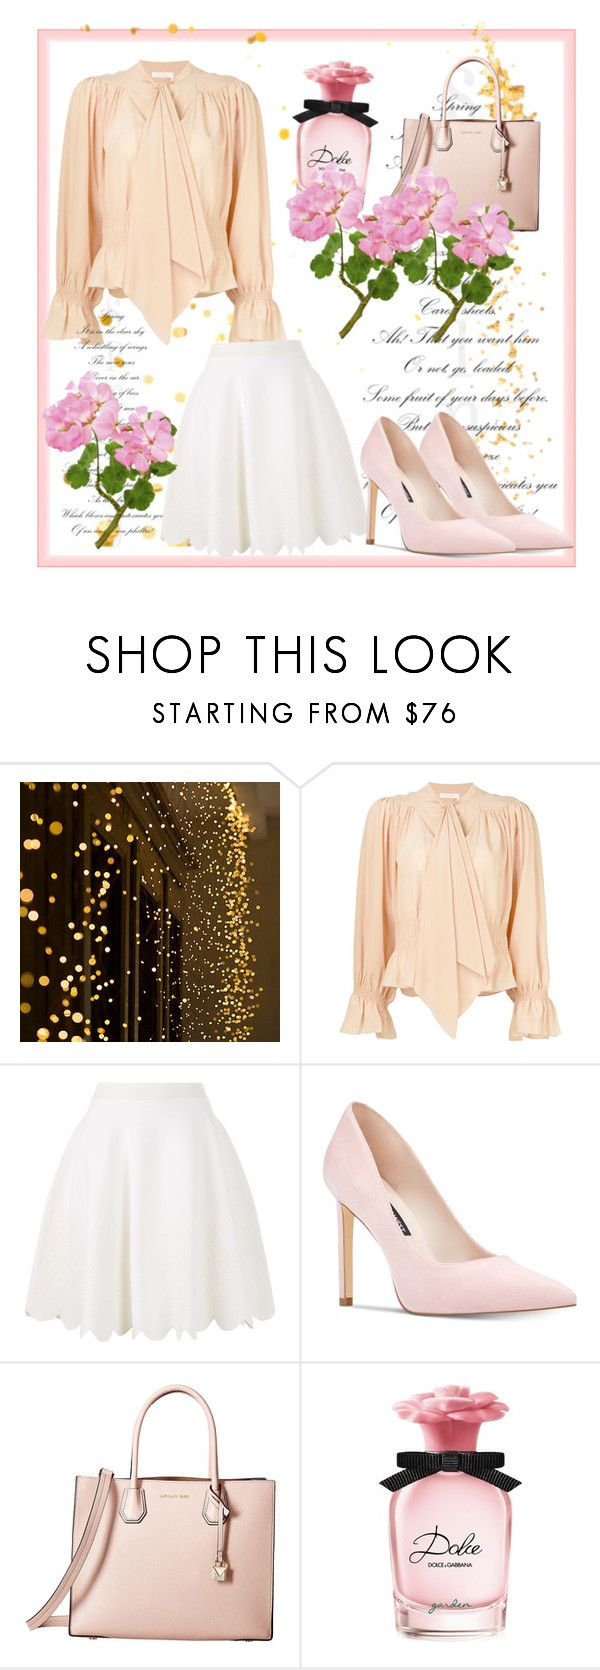 """""""Untitled #90"""" by husicfahreta ❤ liked on Polyvore featuring Chloé, Alexander McQueen, Nine West, MICHAEL Michael Kors and Dolce&Gabbana"""